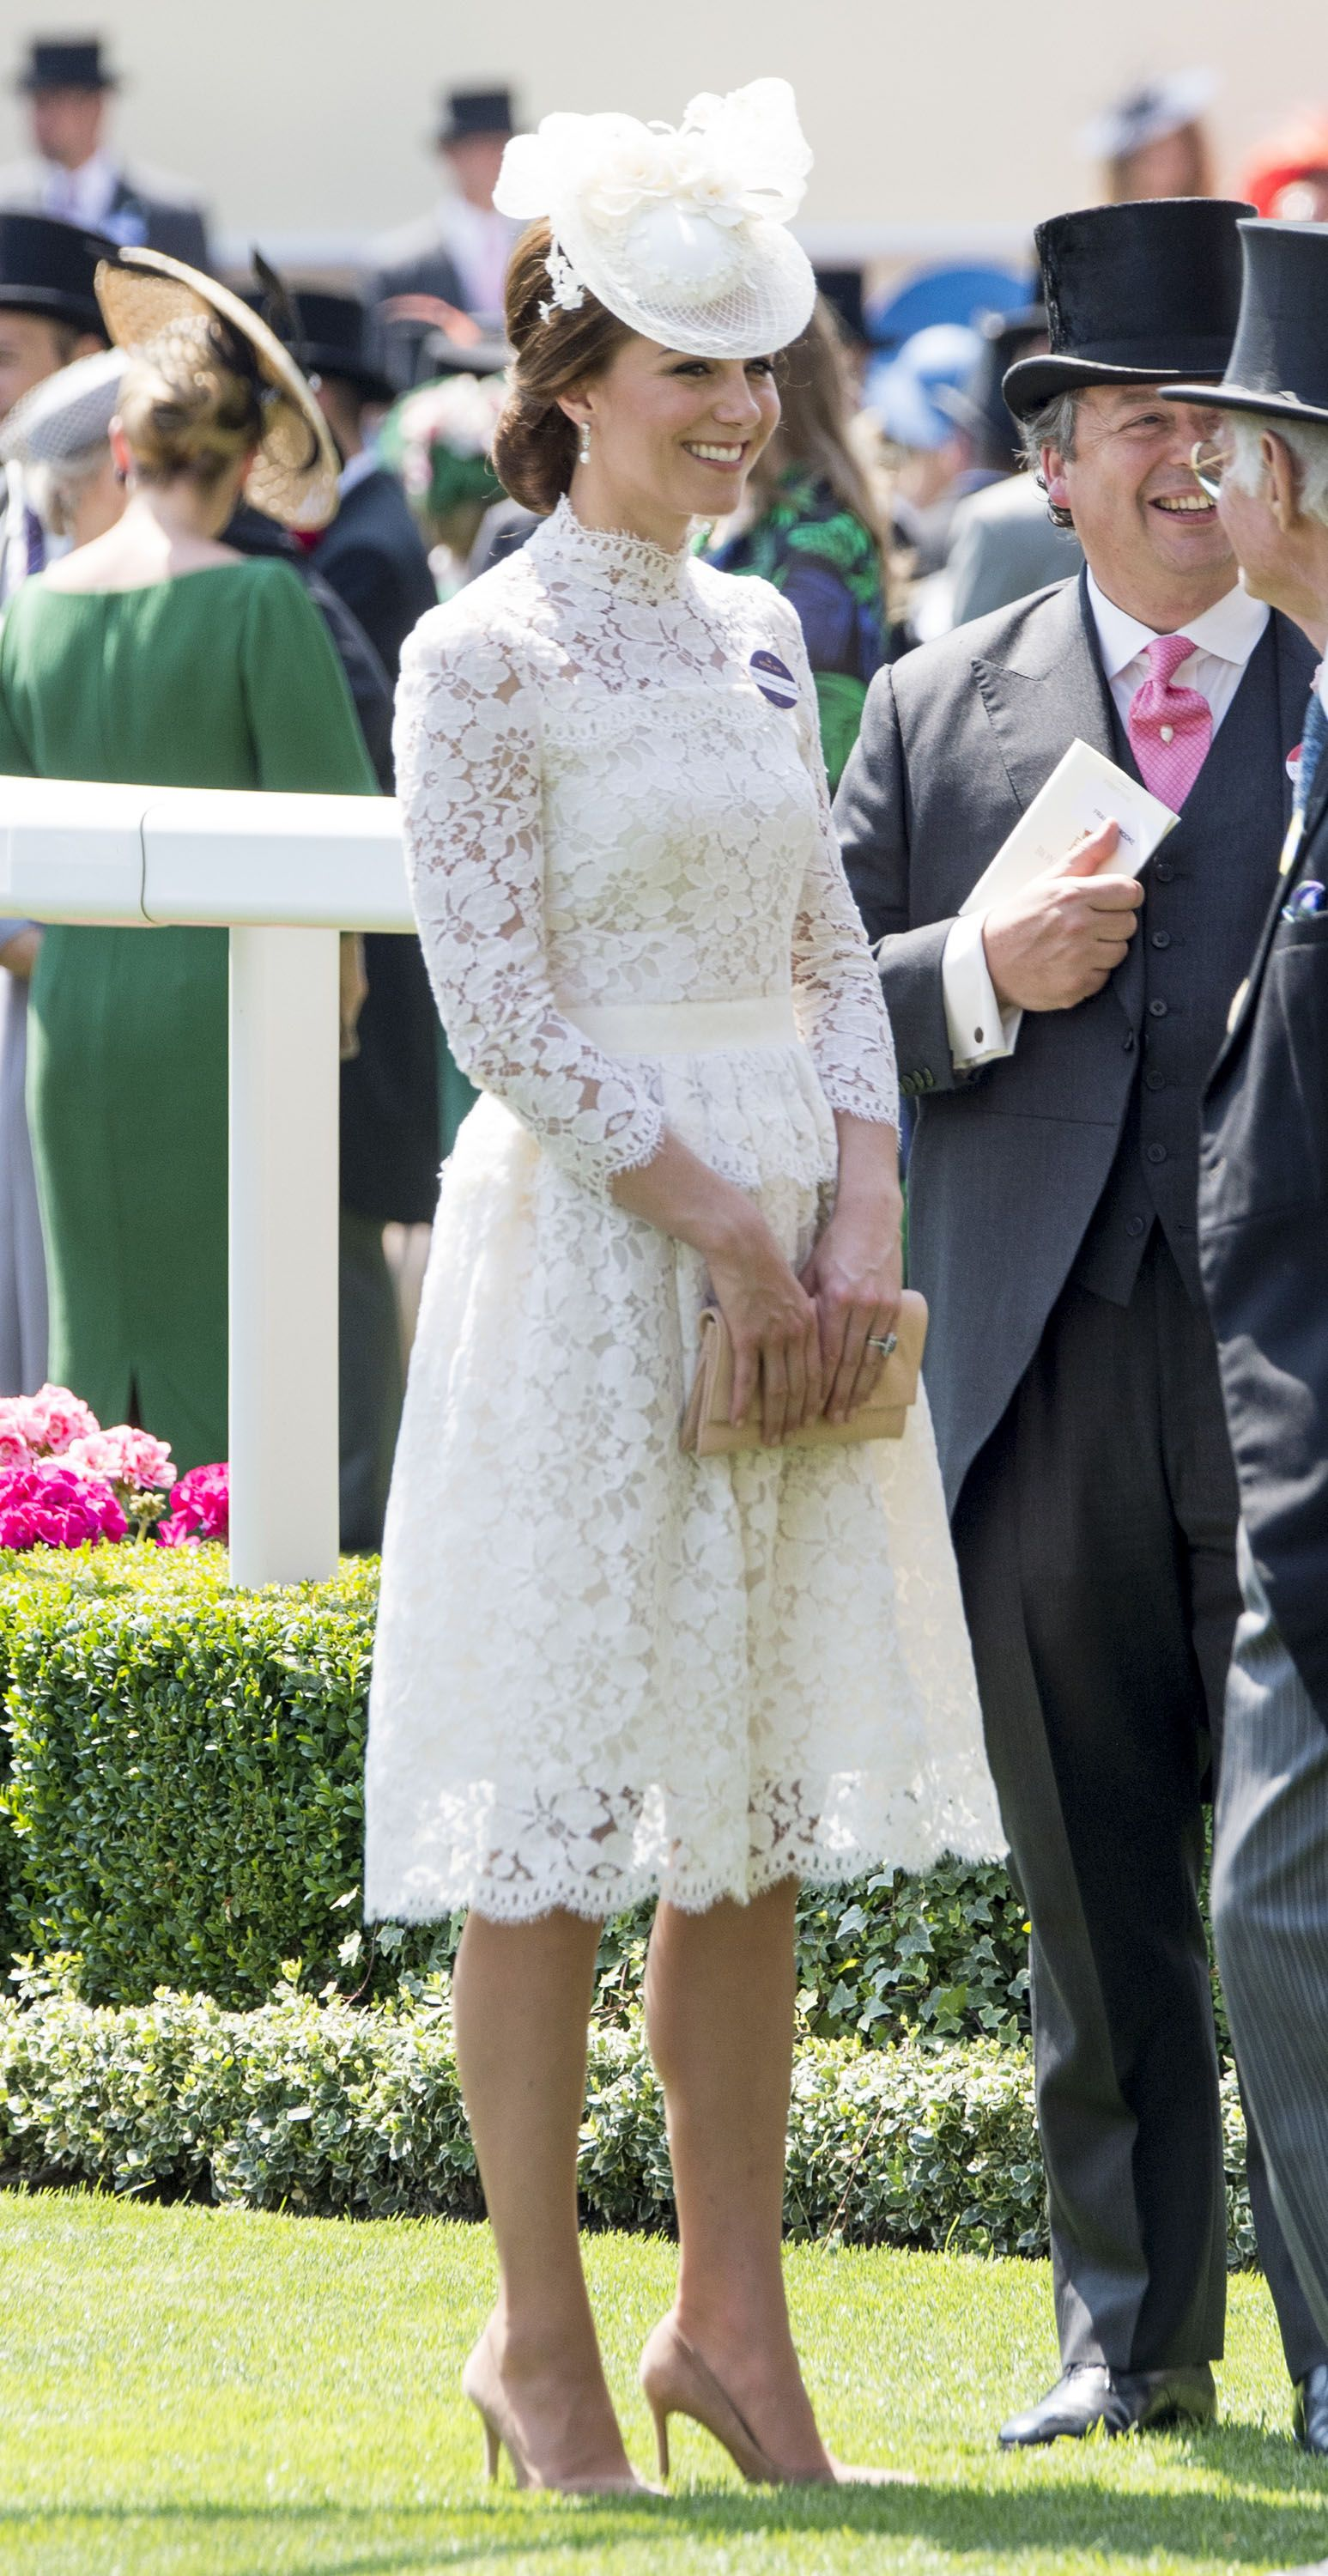 Lace dress kate middleton  lace for Ascot  Learning about Lace  Pinterest  Kate middleton